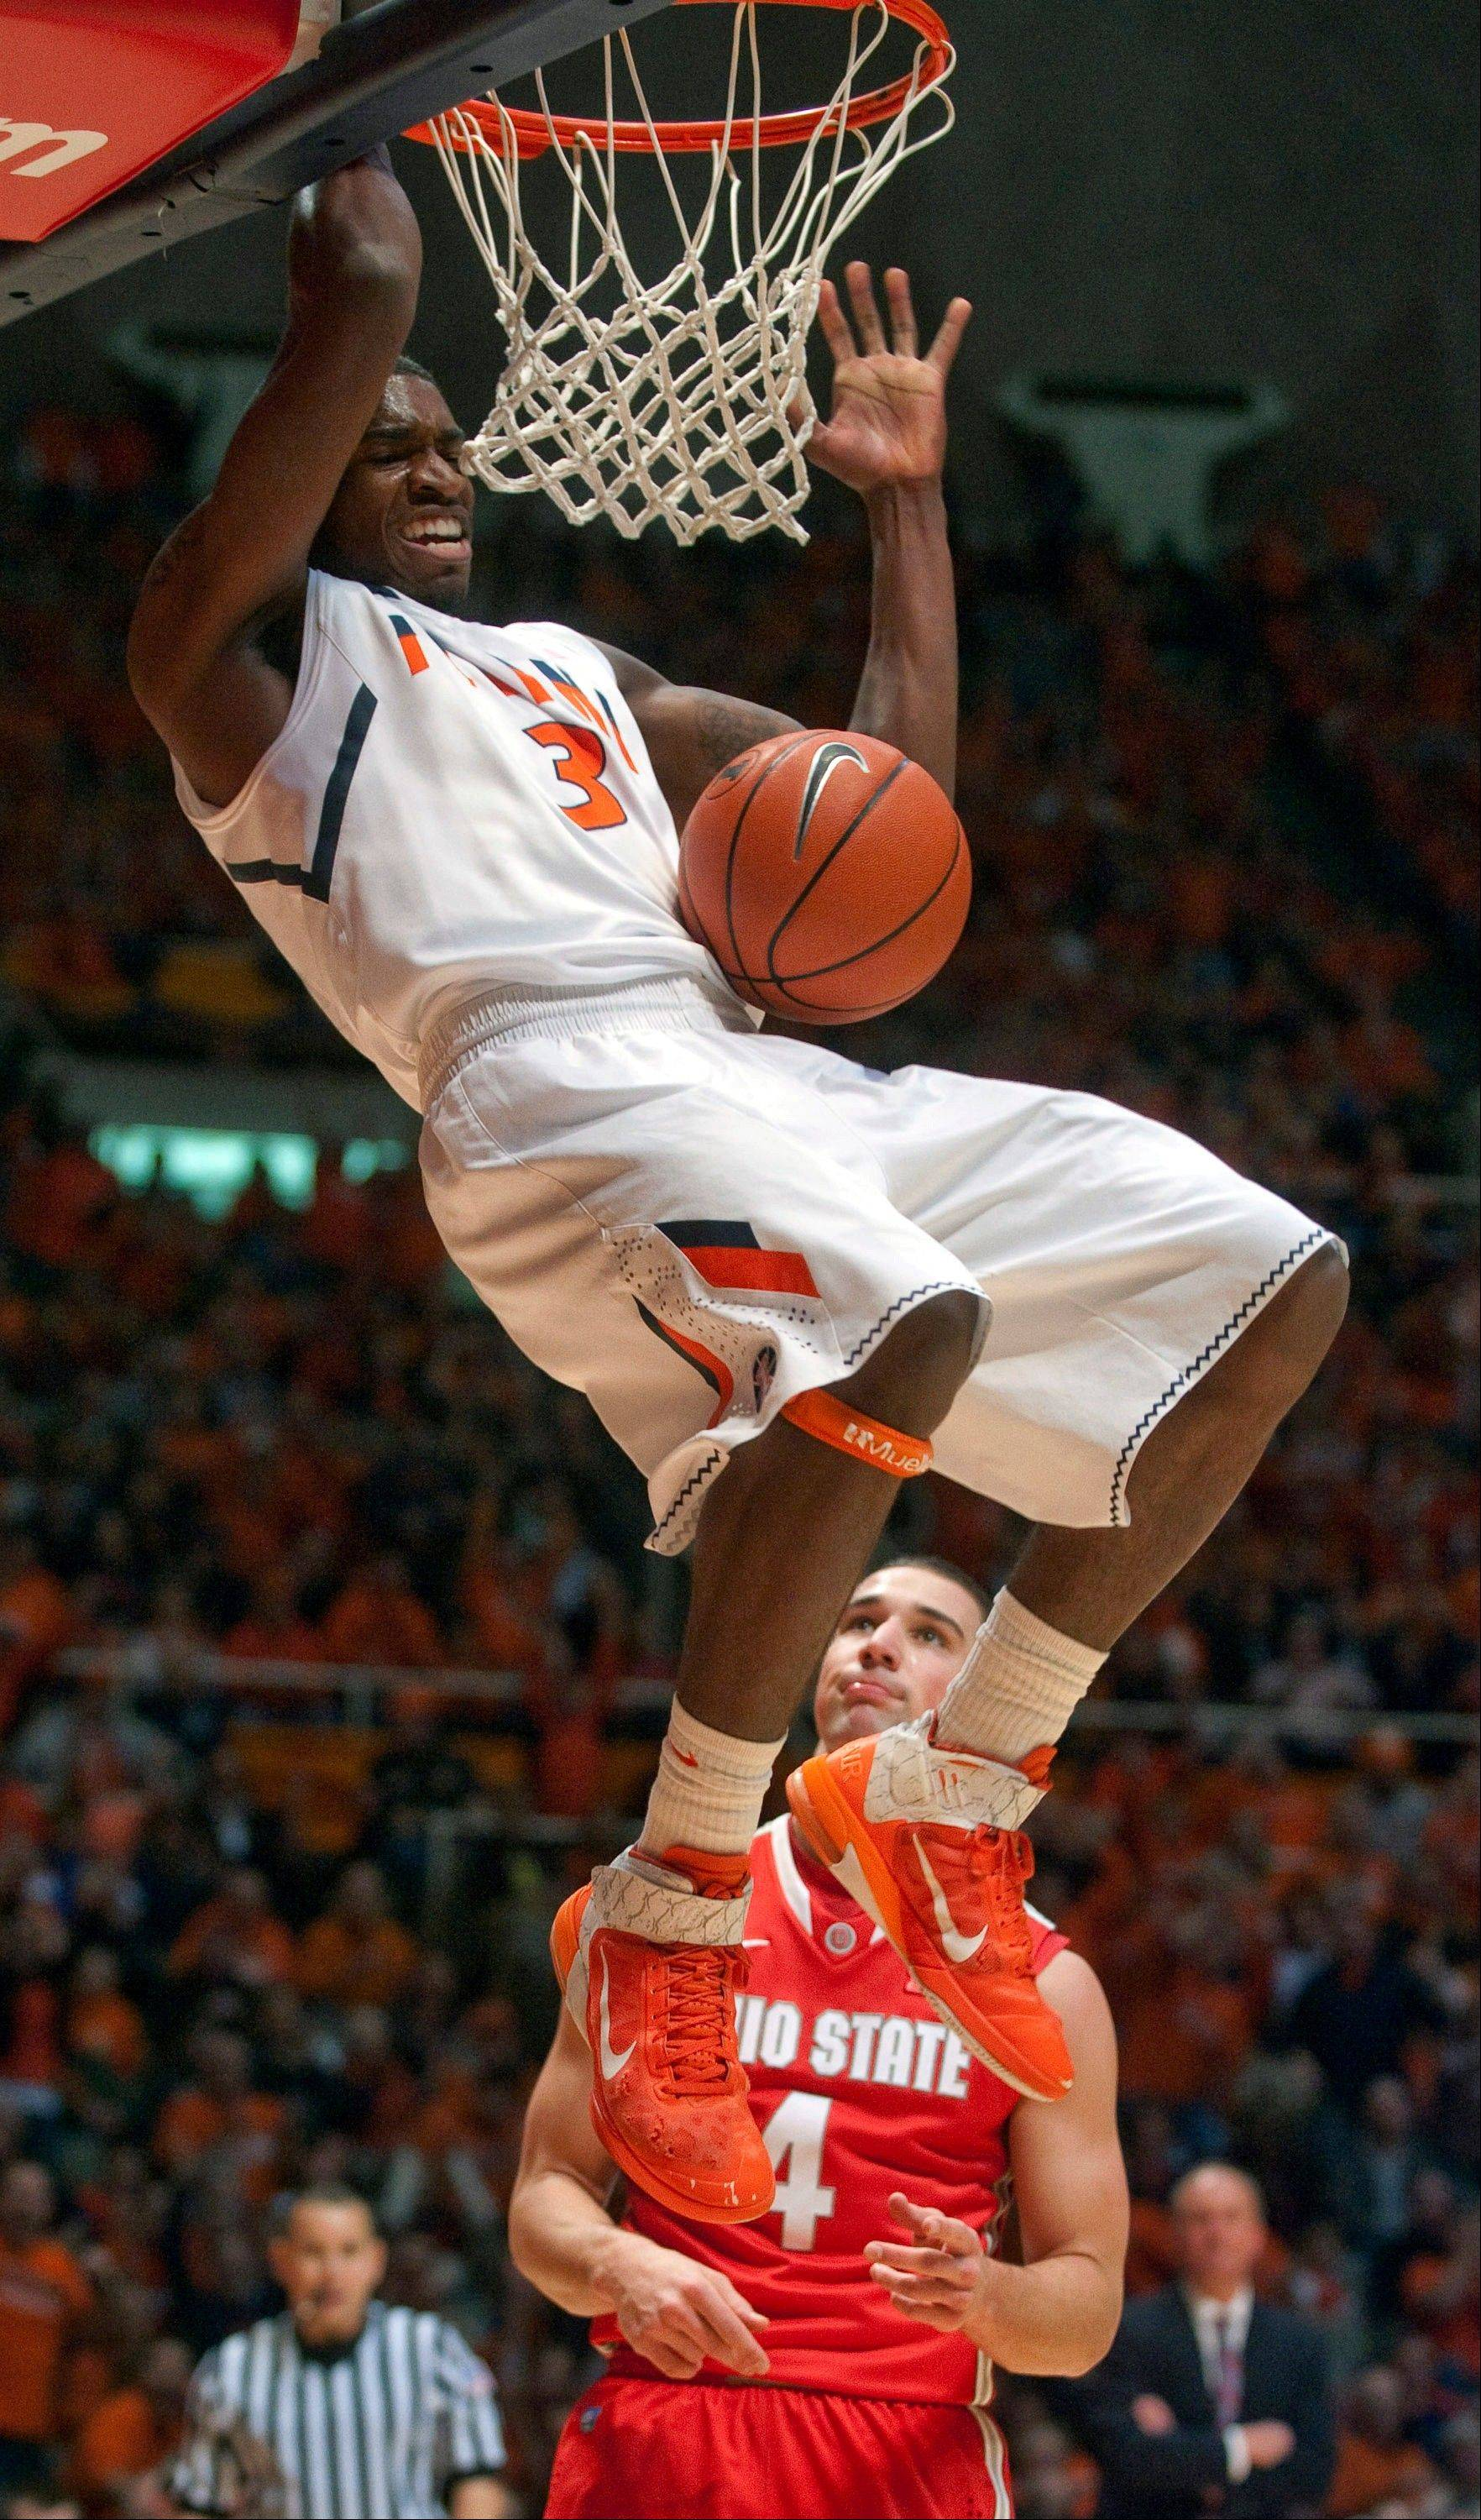 Illinois guard Brandon Paul (3) dunks as Ohio State guard Aaron Craft (4) looks on Saturday during the first half in Champaign.